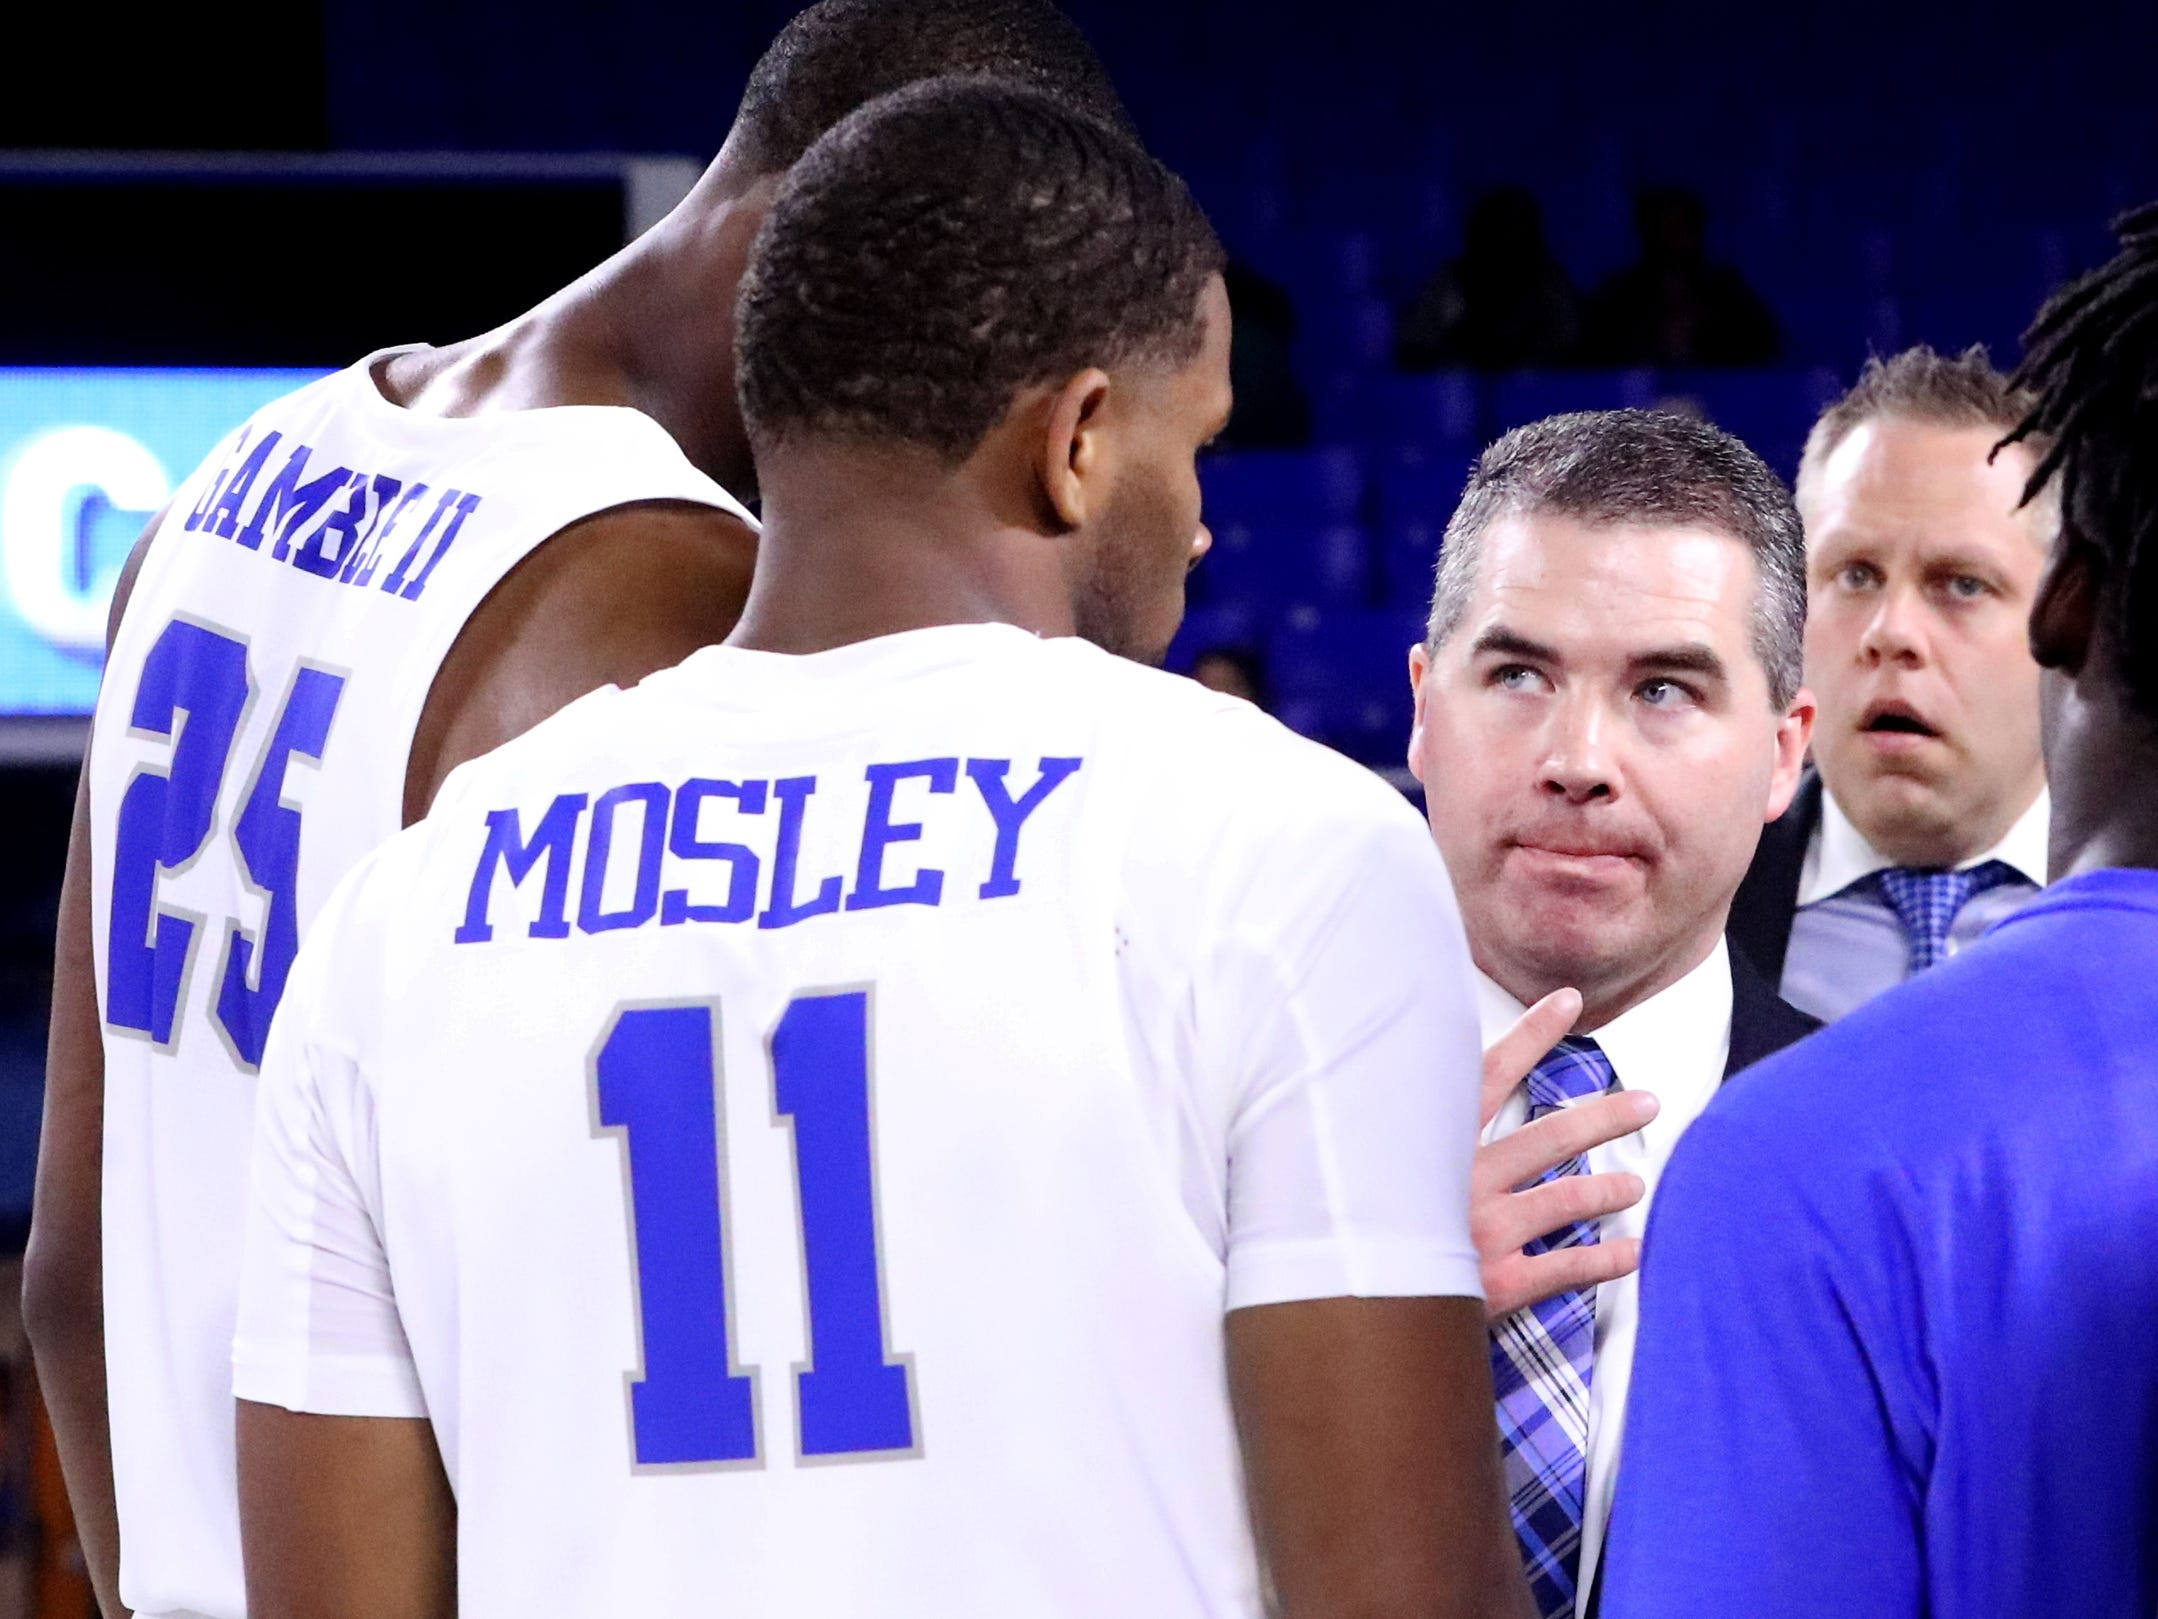 MTSU's head coach Nick McDevitt meets with his players on the court after defeating Lees-McRae  Lees-McRae on Tuesday, Nov. 6, 2018.